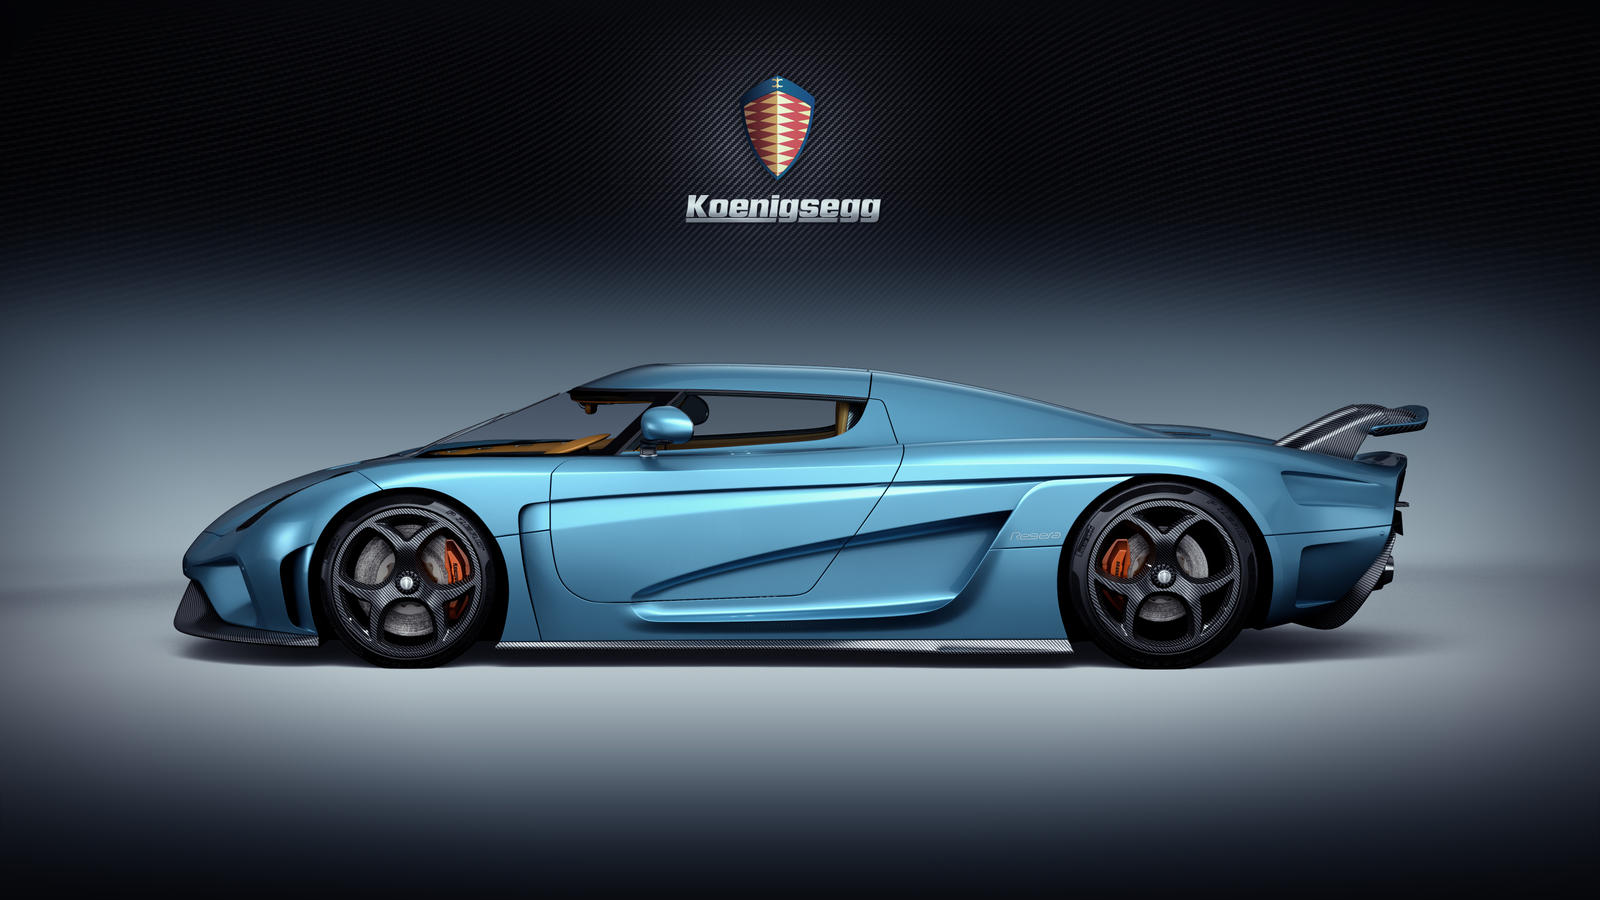 Koenigsegg Regera By Splicer436 On Deviantart